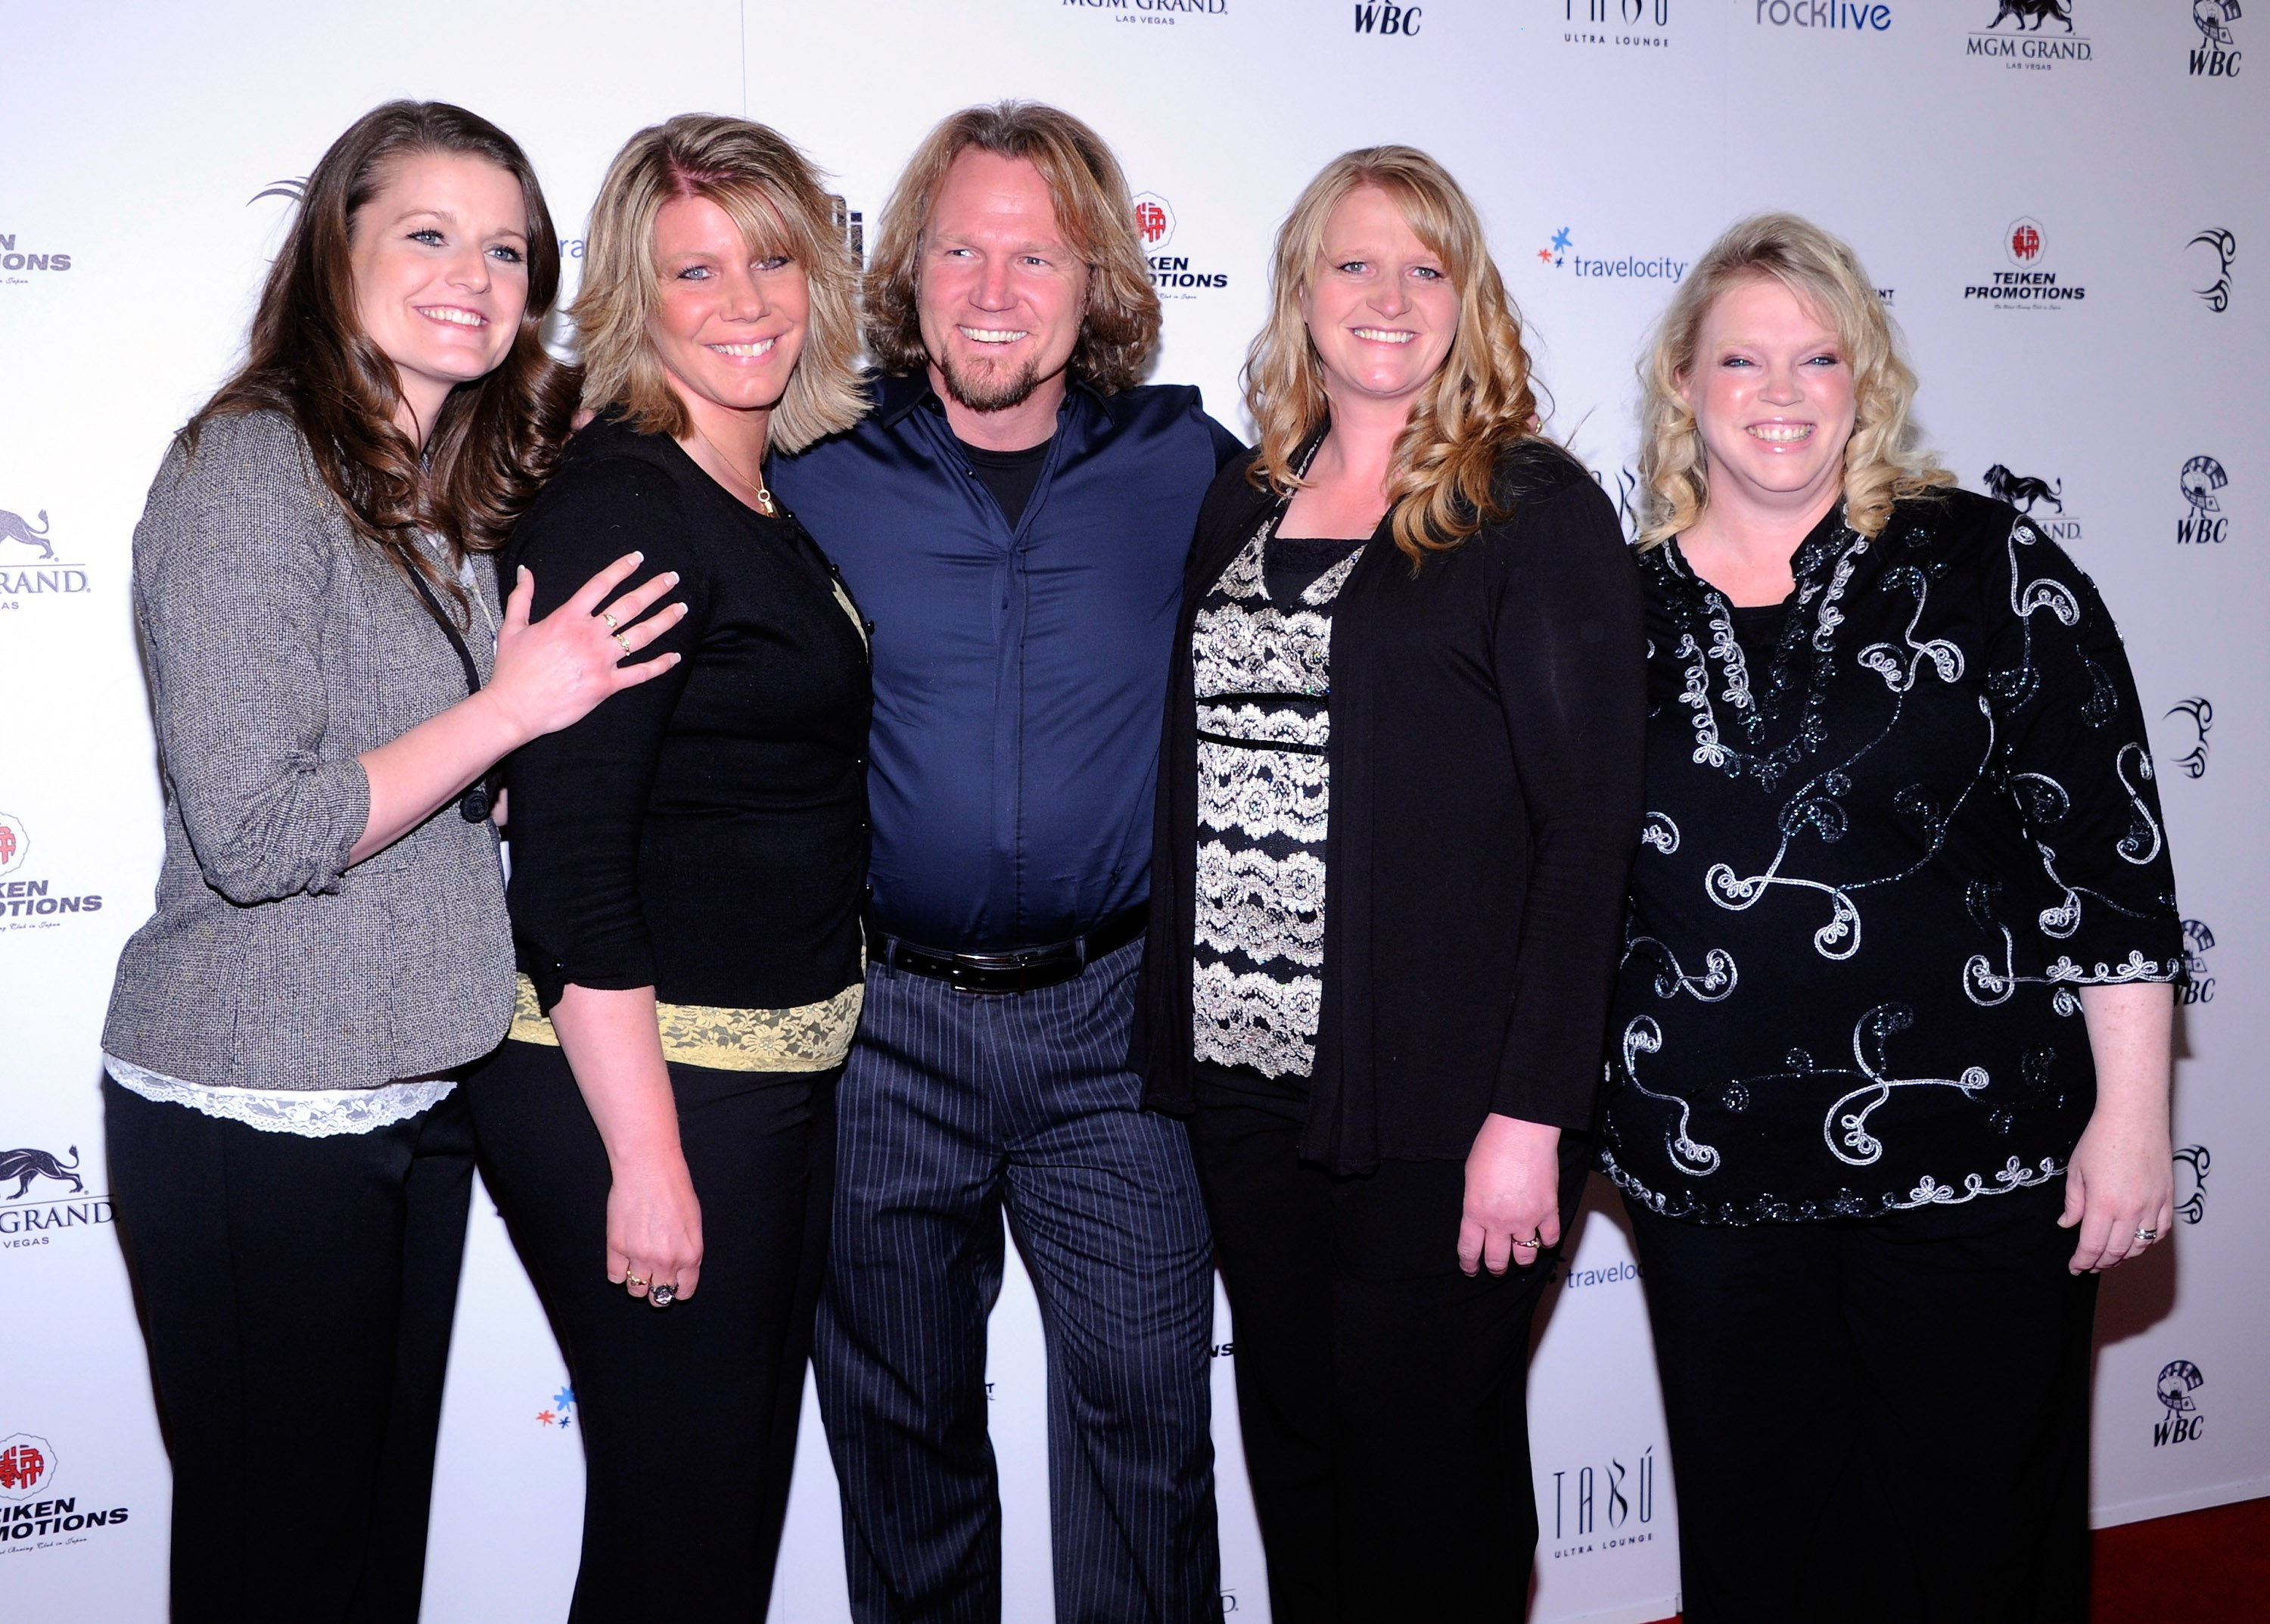 """Robyn Brown, Meri Brown, Kody Brown, Christine Brown and Janelle Brown from """"Sister Wives"""" pictured at  Mike Tyson's one-man show """"Mike Tyson: Undisputed Truth - Live on Stage,"""" 2012, Las Vegas. 